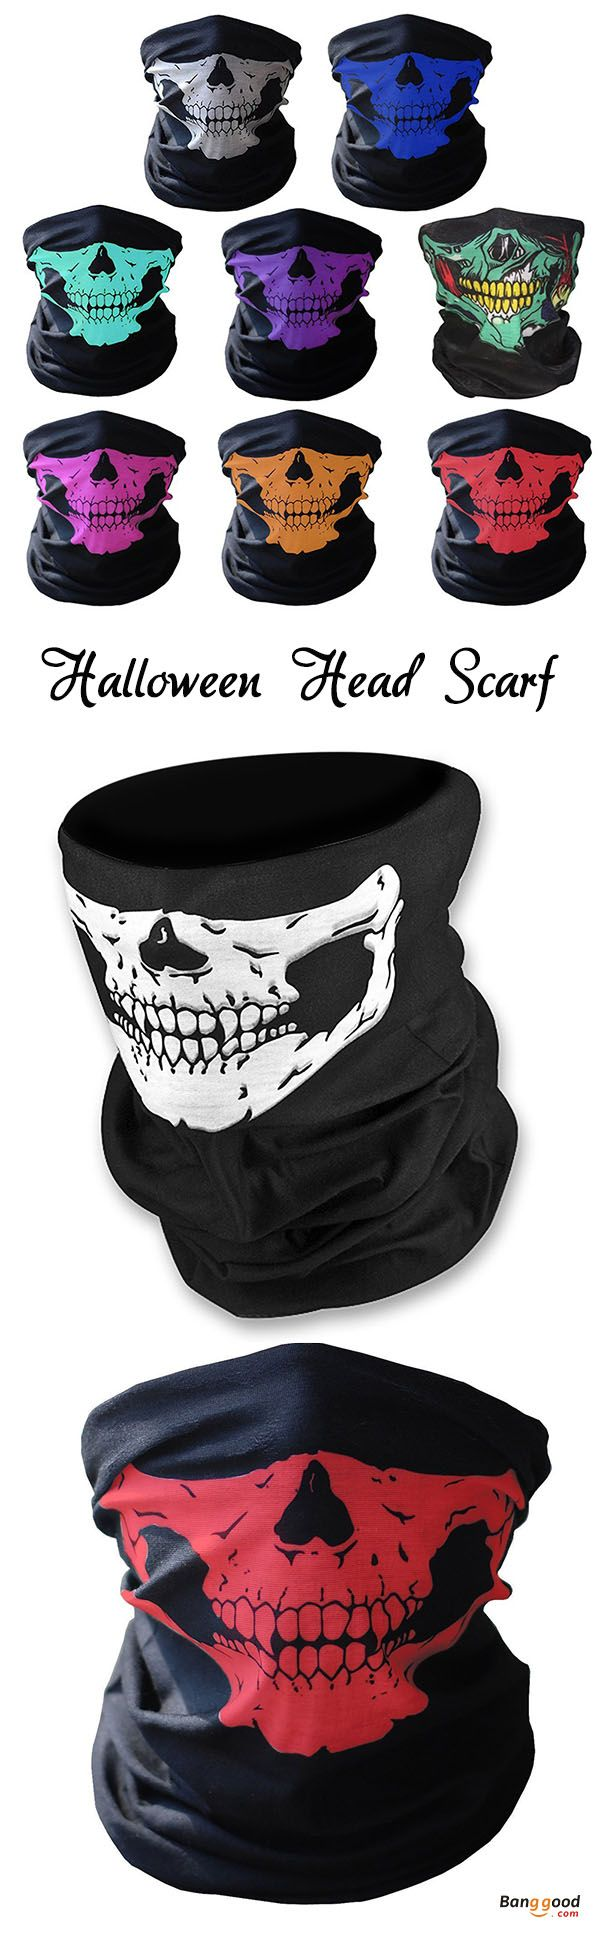 US$2.21 or US$3.99 + Free shipping. Multifunctional Seamless Changed Magic Scarf Halloween Costumes Skull Head Scarf Mask Multi Color. Halloween gifts, creative  gifts, perfect for the coming festivals!